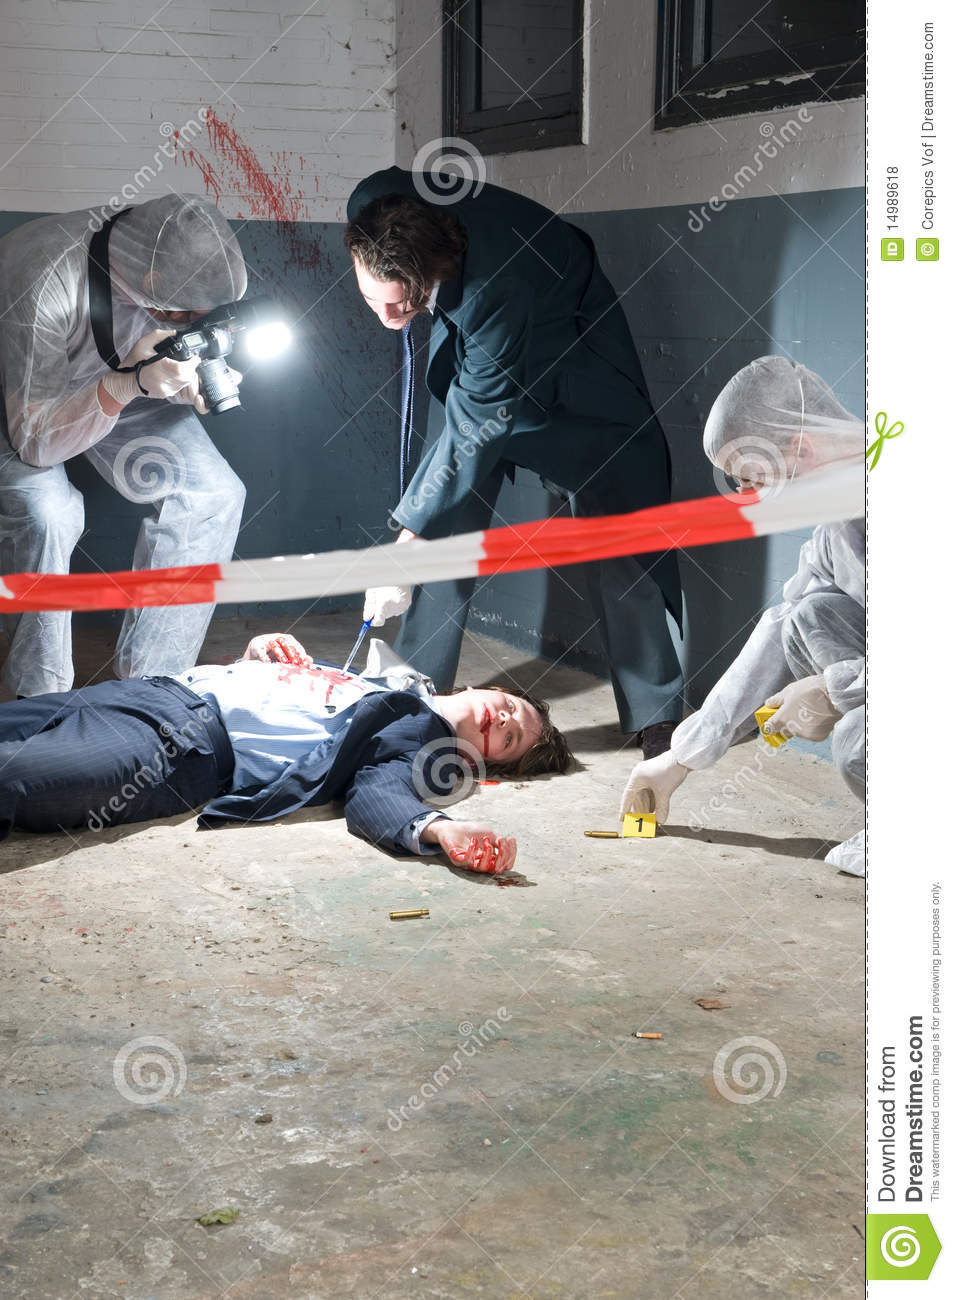 Police Investigating Death Of 16 Year Old West Jordan Boy: Crime Scene Investigation Stock Photo. Image Of